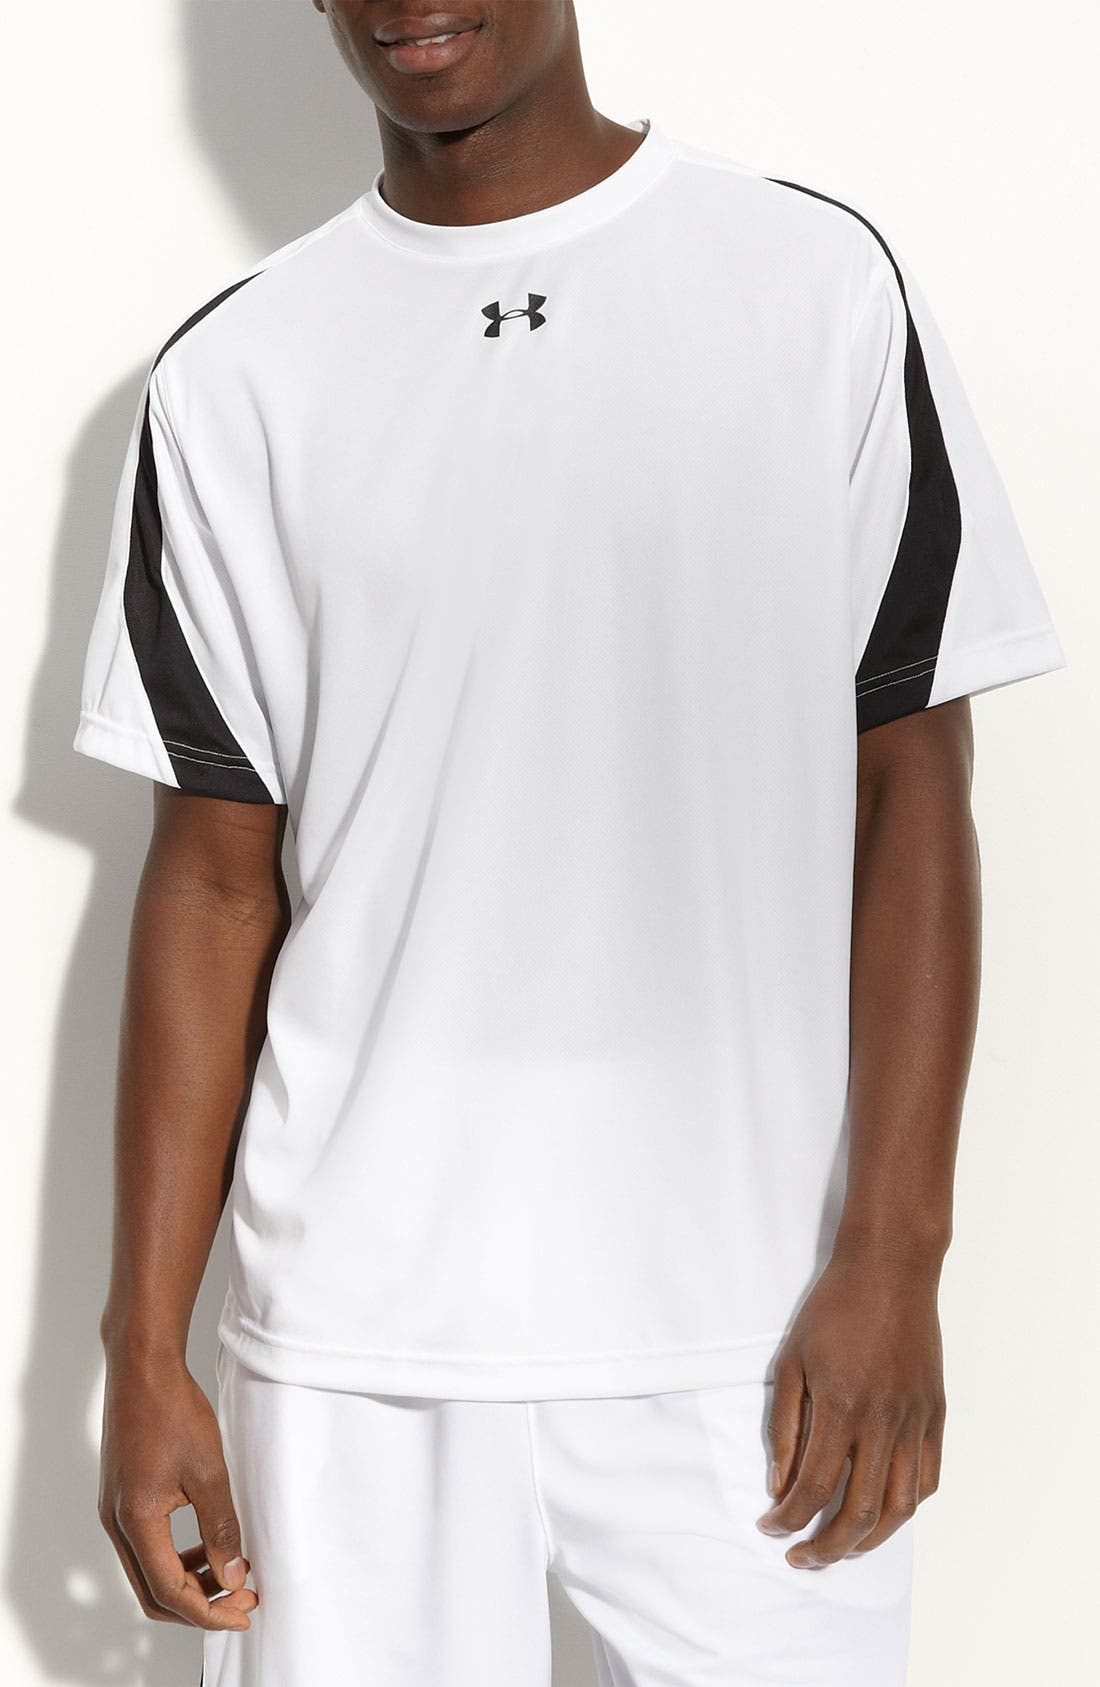 Alternate Image 1 Selected - Under Armour 'Zone III' HeatGear® T-Shirt